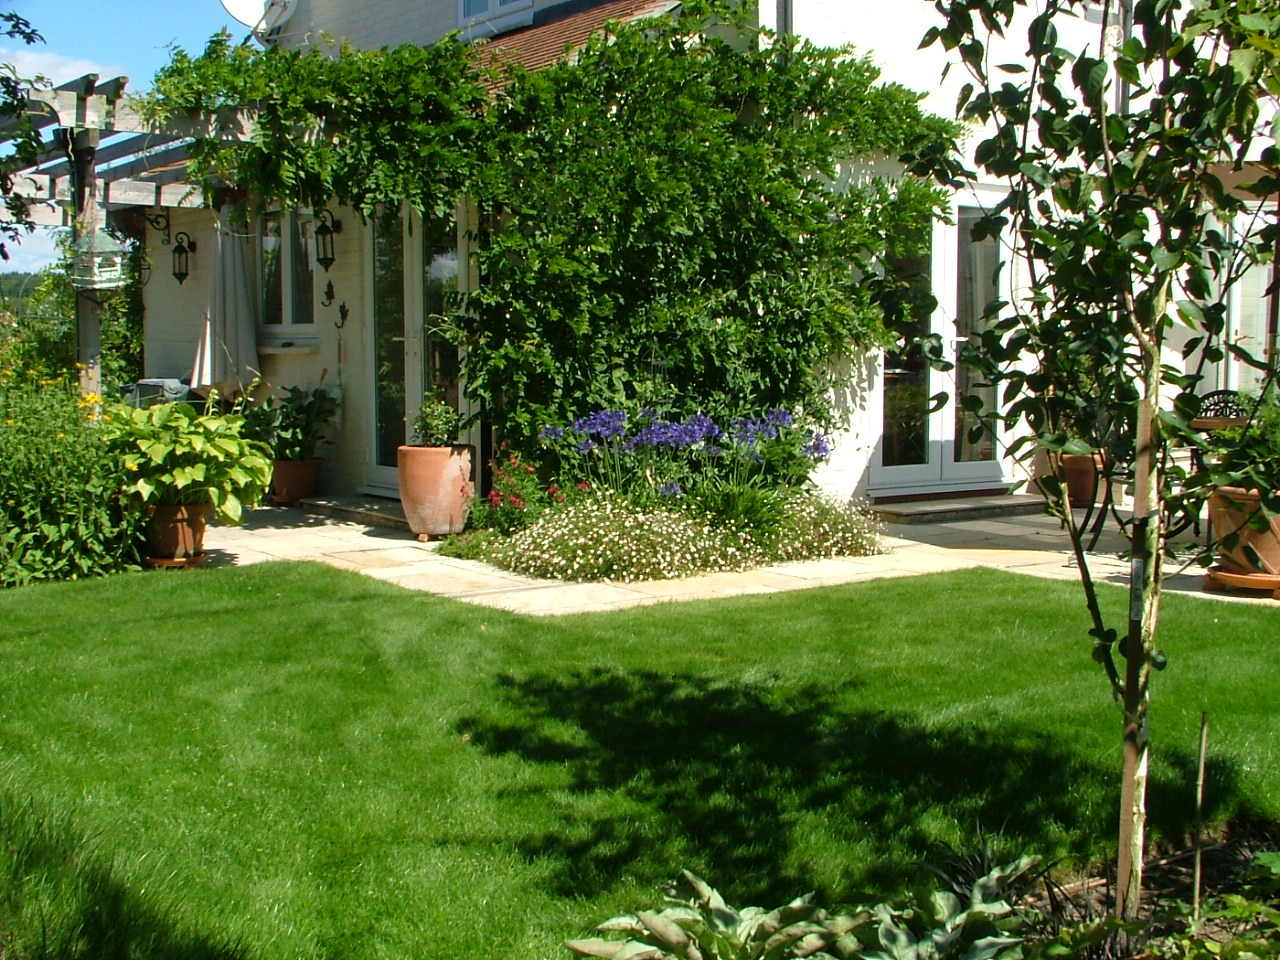 GreenThumb (Aylesbury) - Your Local Lawn Care Service